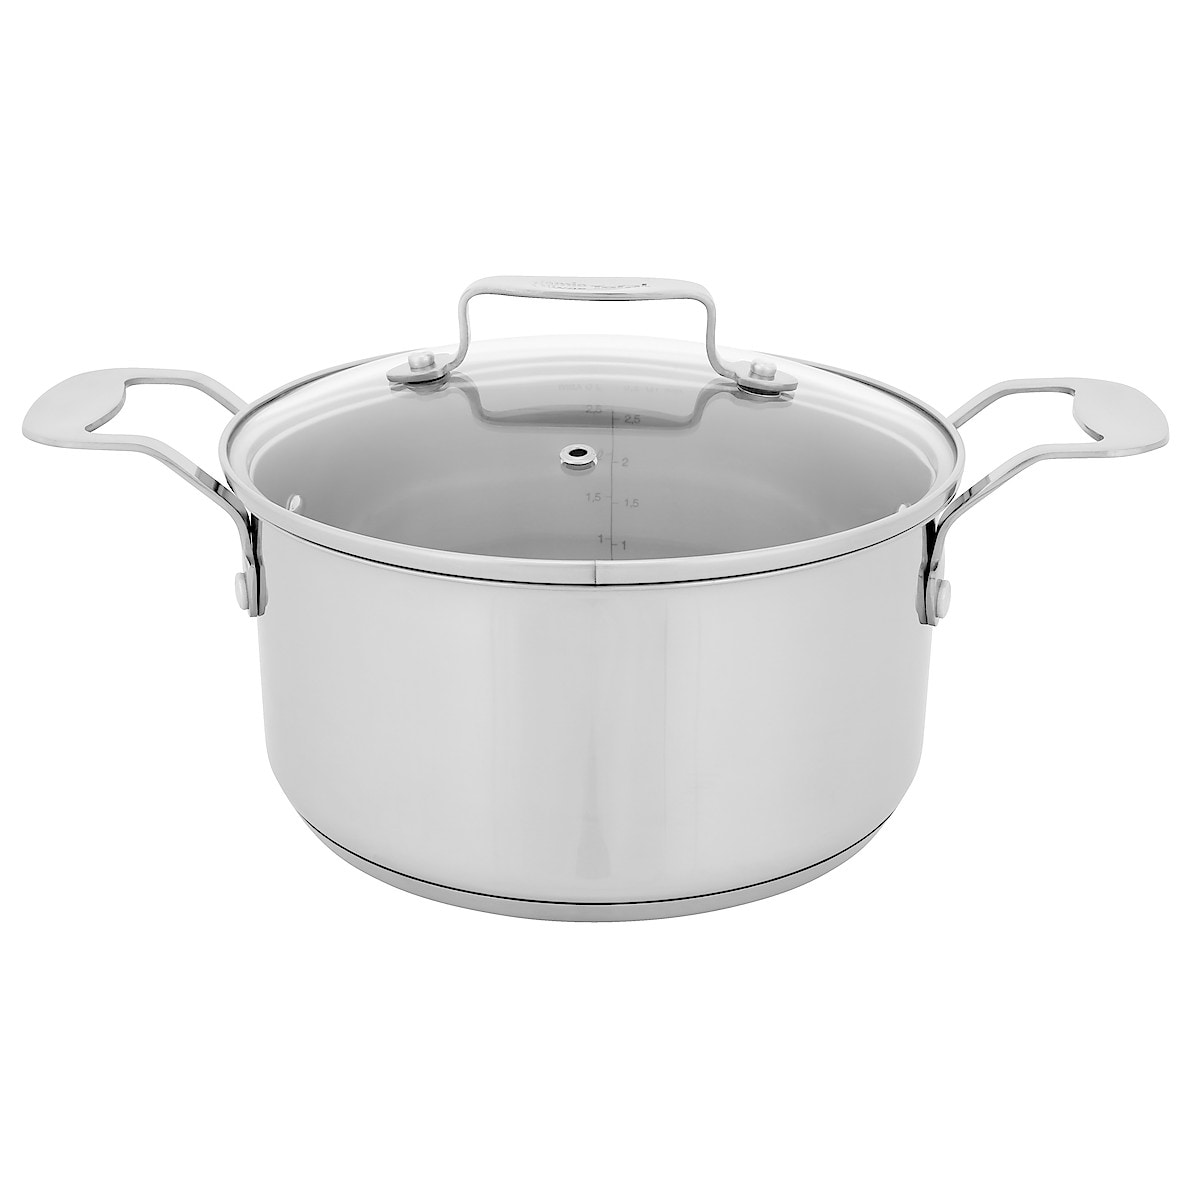 Gryta 3,0 l Jamie Oliver Everyday Stainless Steel